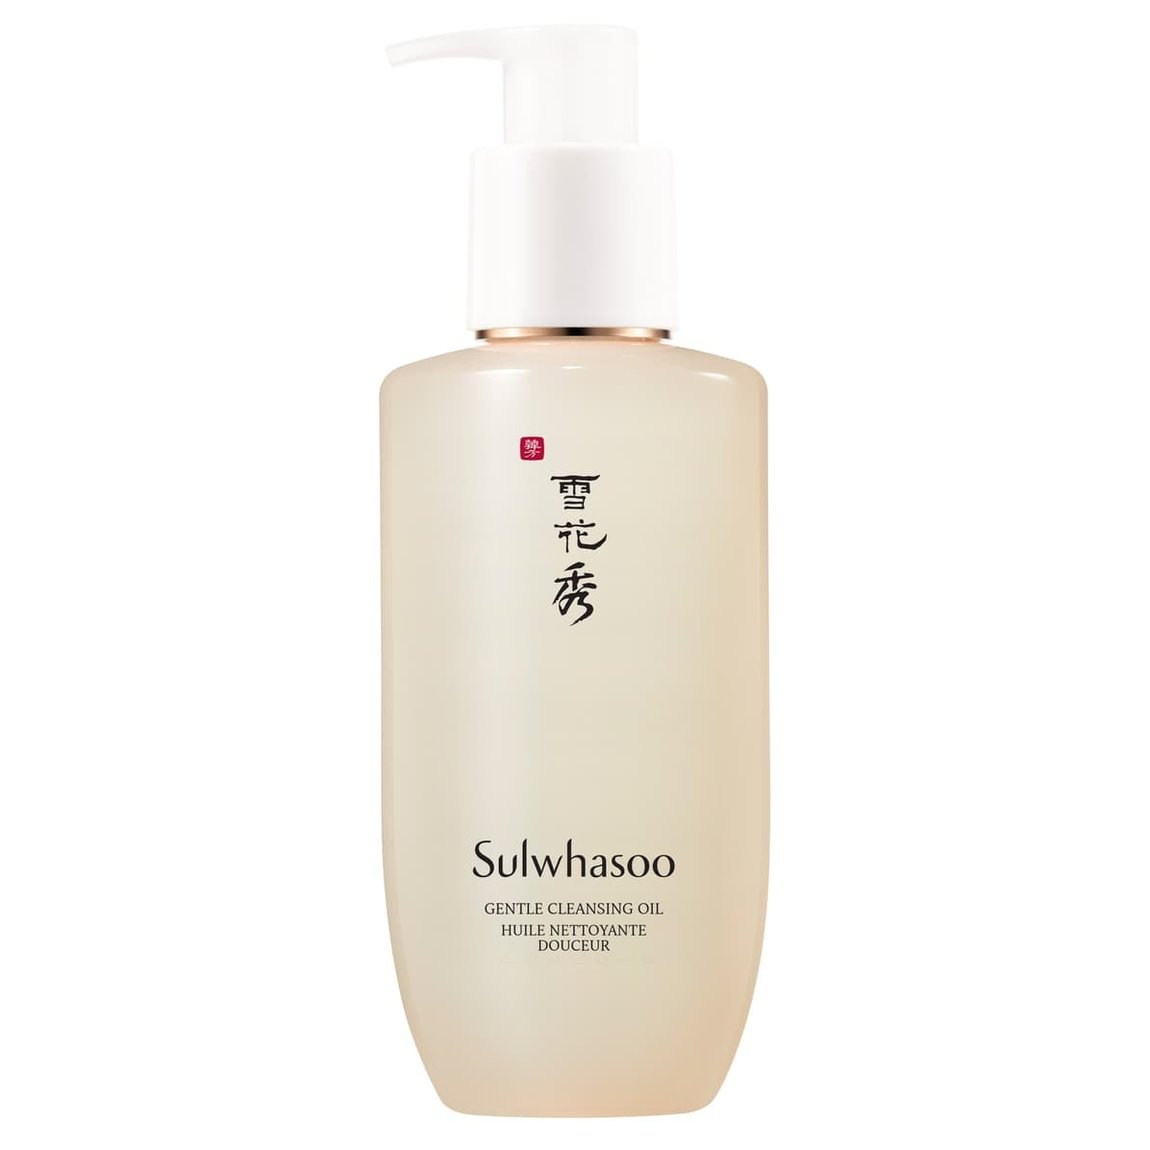 Sulwhasoo Gentle Cleansing Oil product swatch.